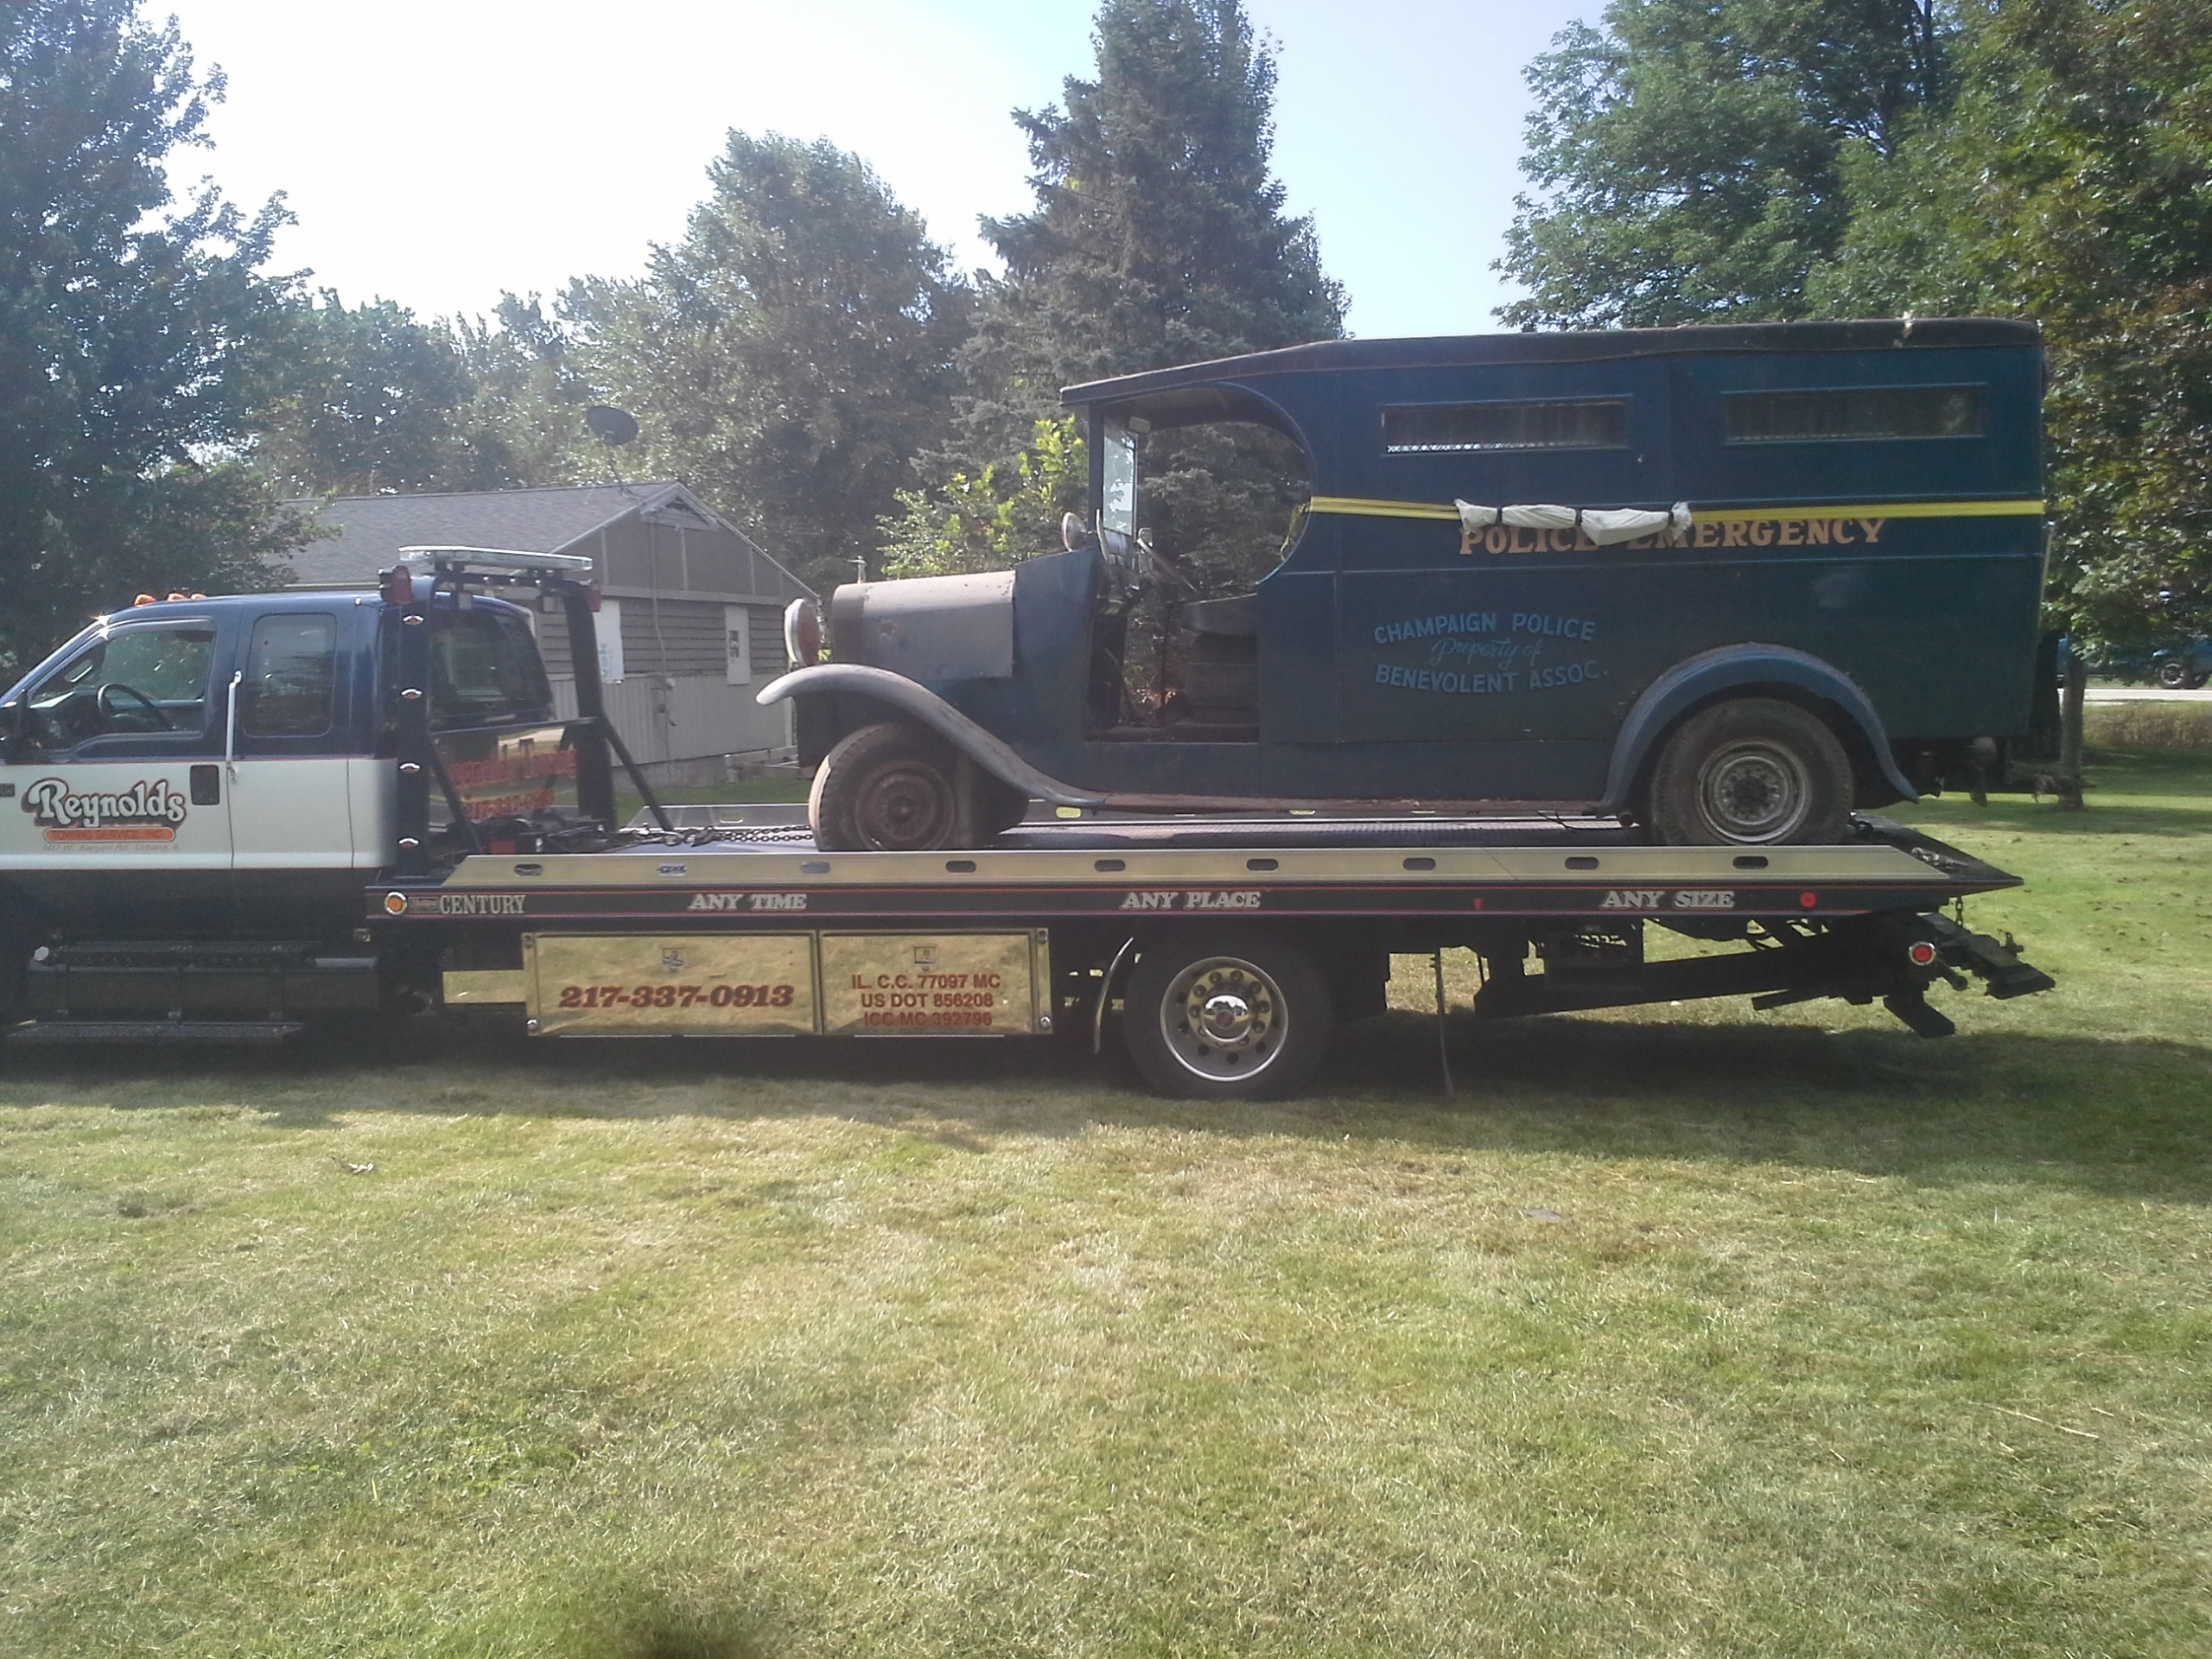 Reynolds Towing Service image 10